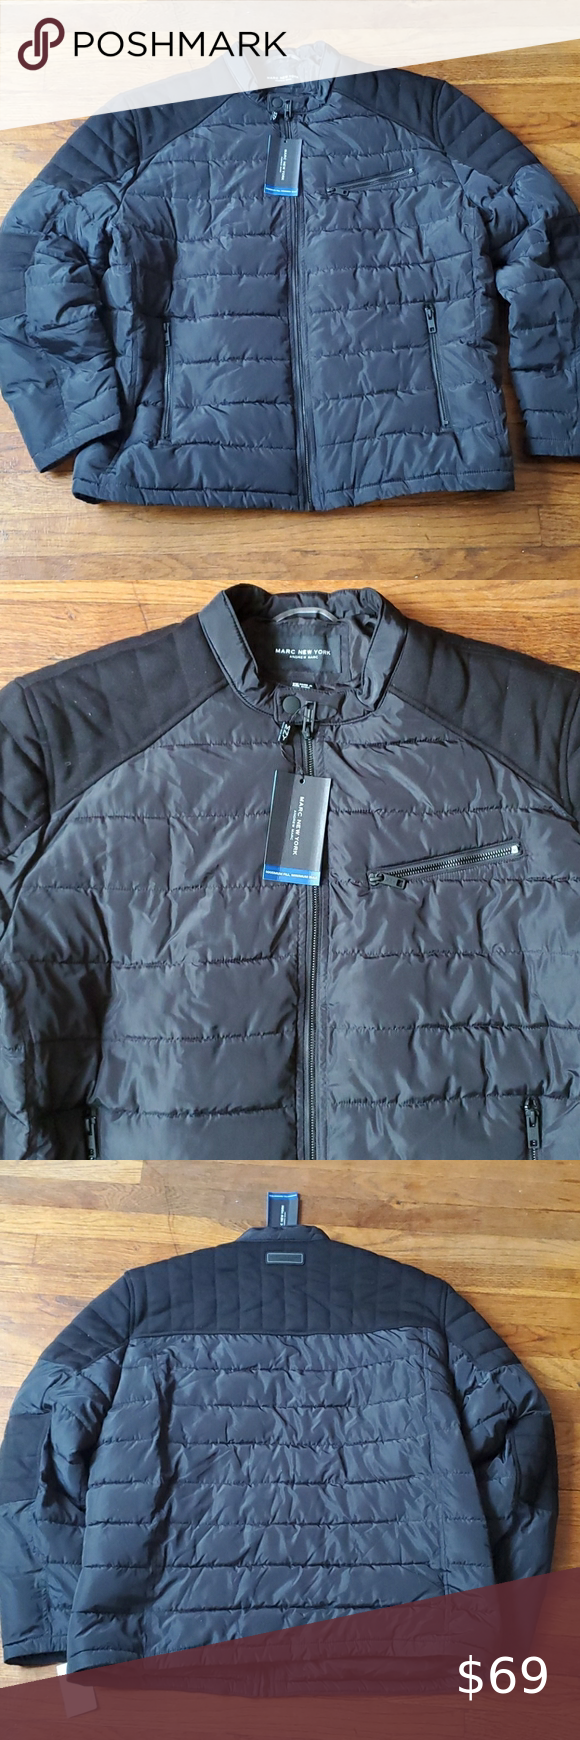 Andrew Marc Marc New York Puffer Jacket Marc New York Andrew Marc Puffer Jackets [ 1740 x 580 Pixel ]